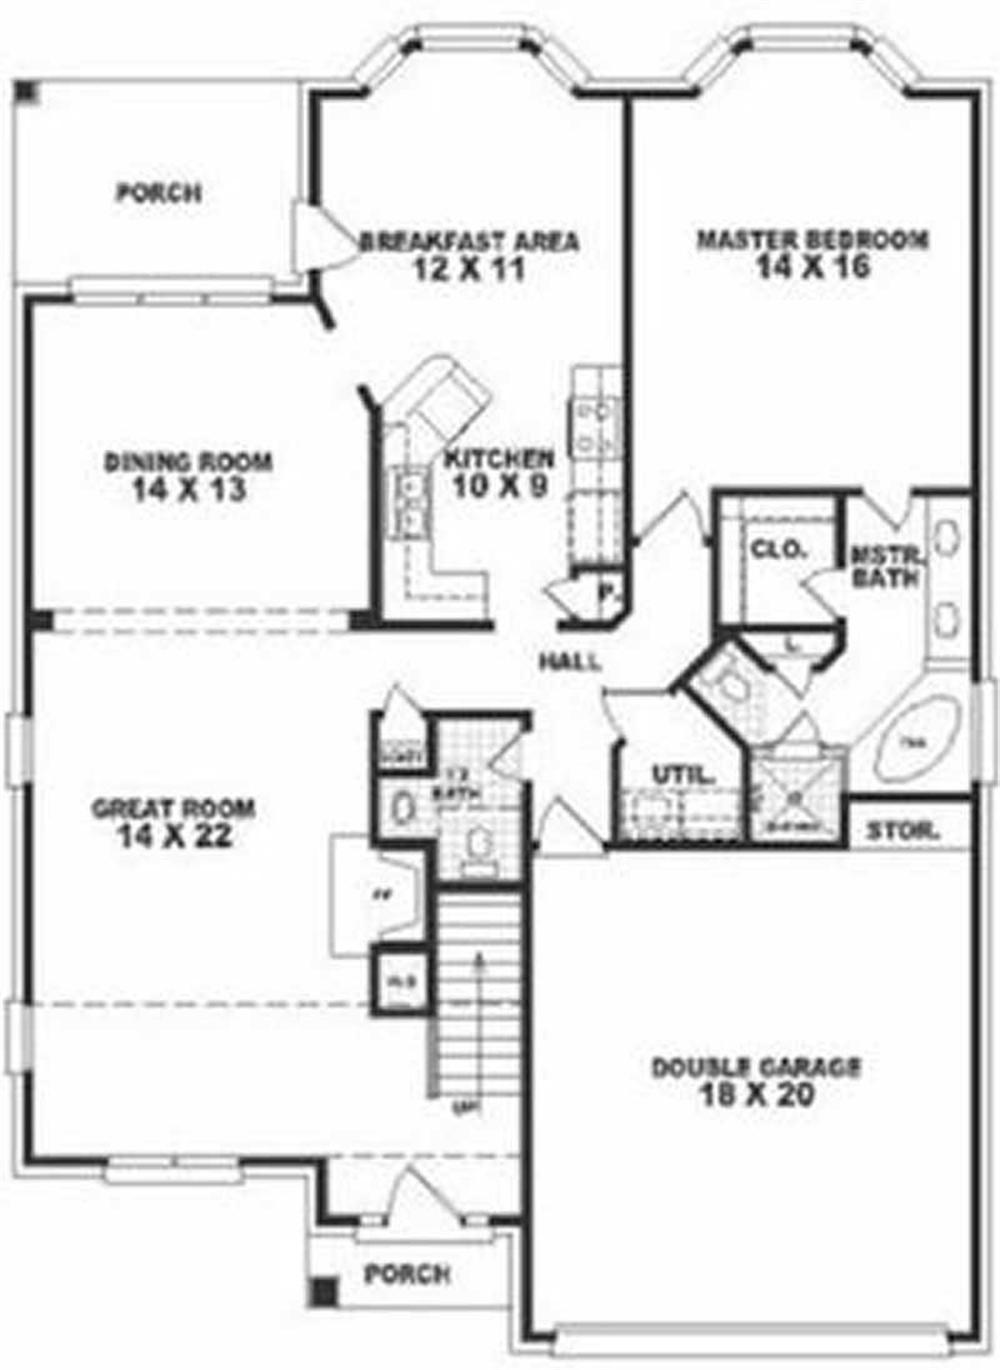 Large Images For House Plan 170 2820